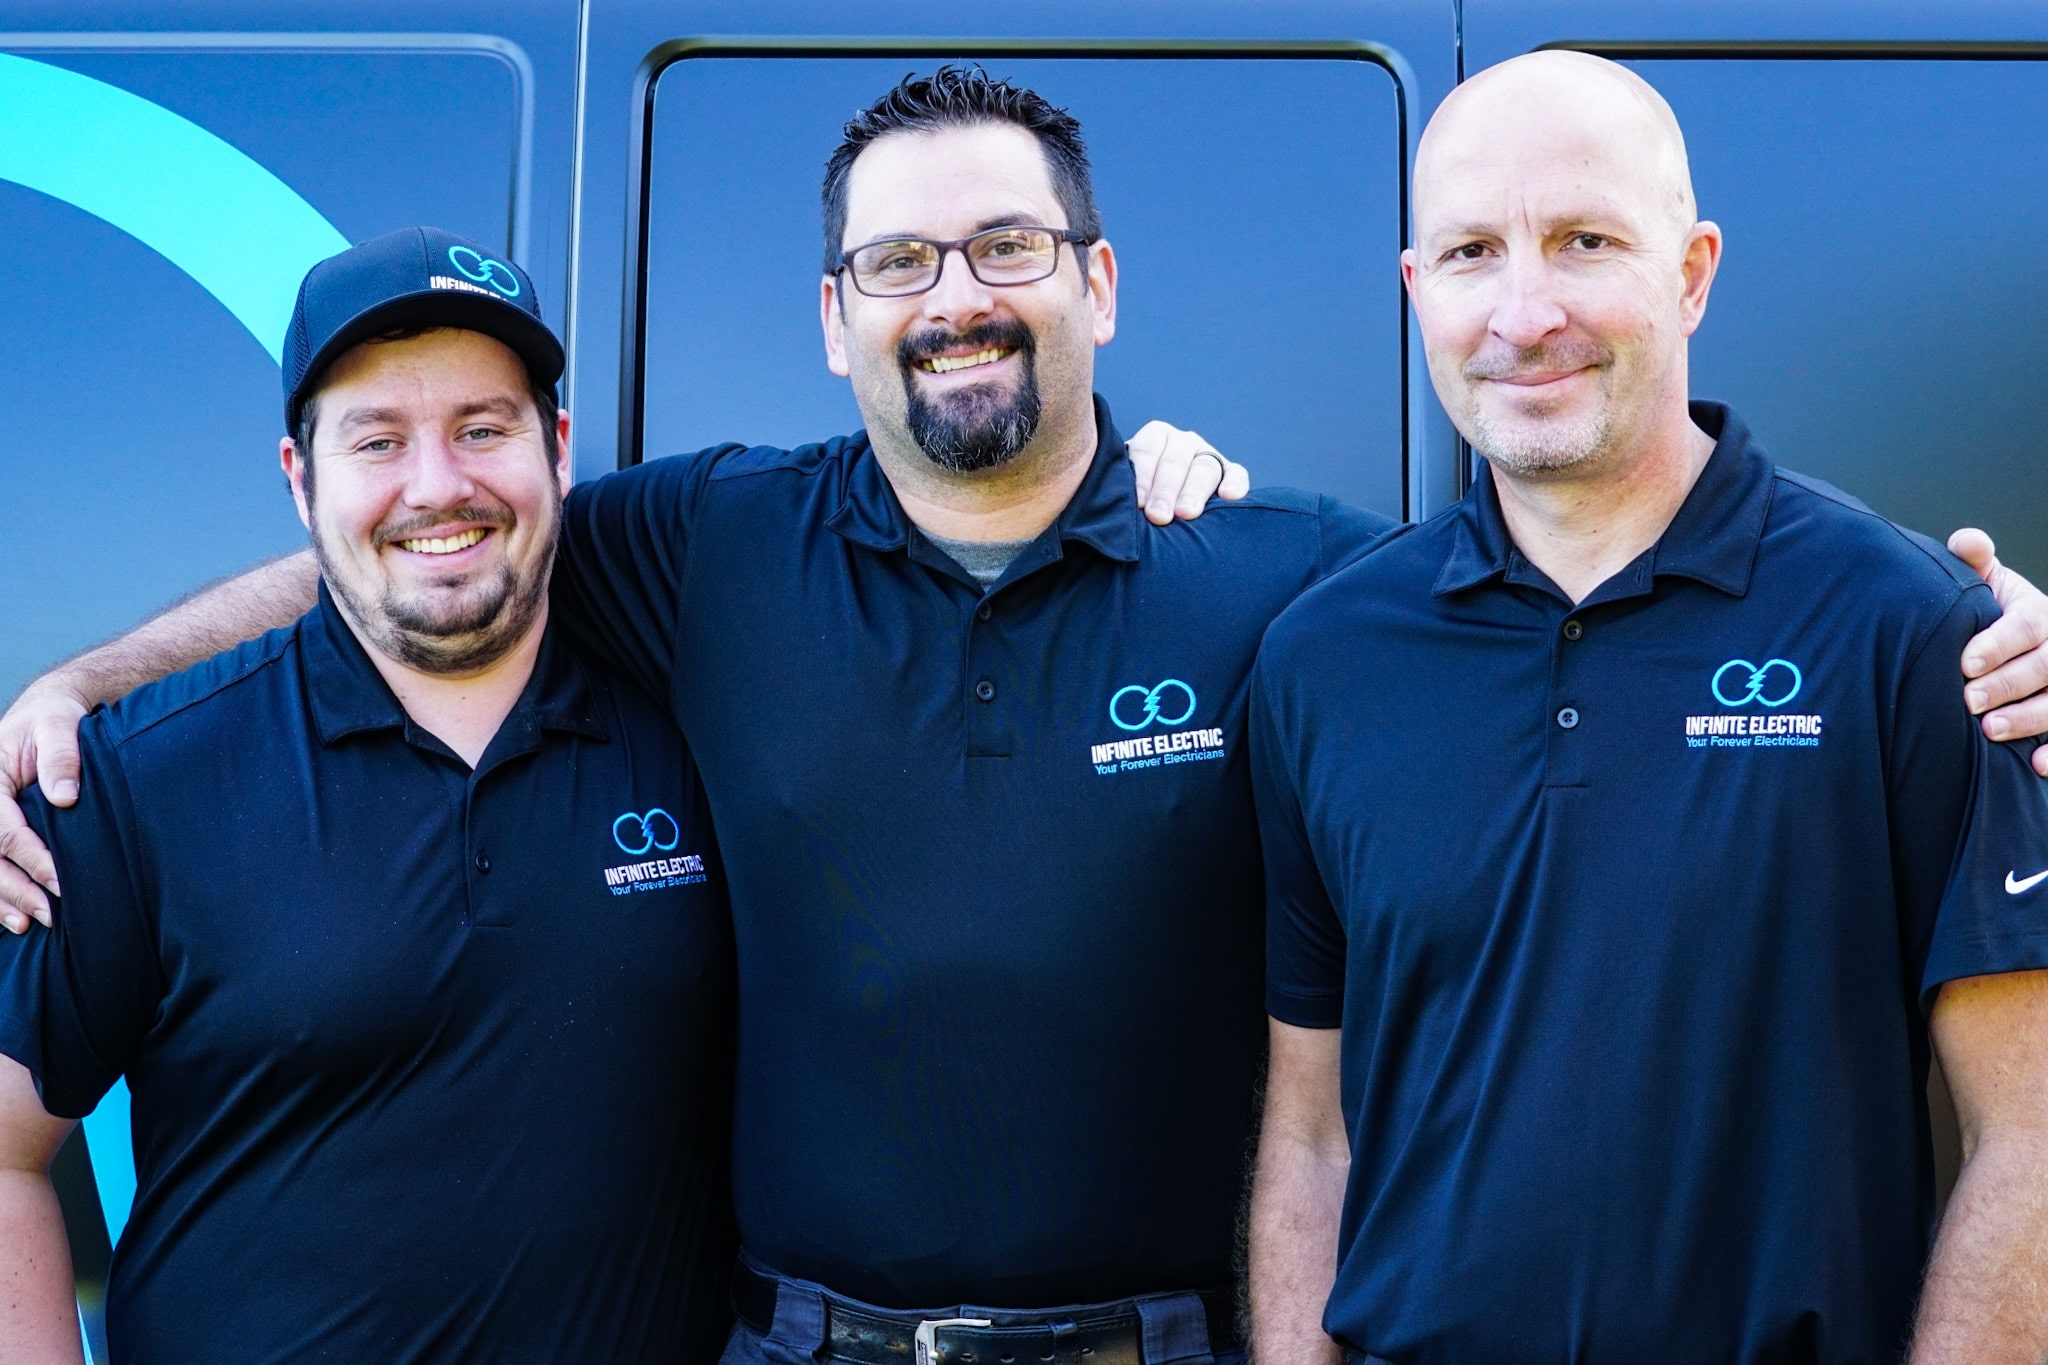 Infinite Electricians standing in front of their service van in Liberty Lake